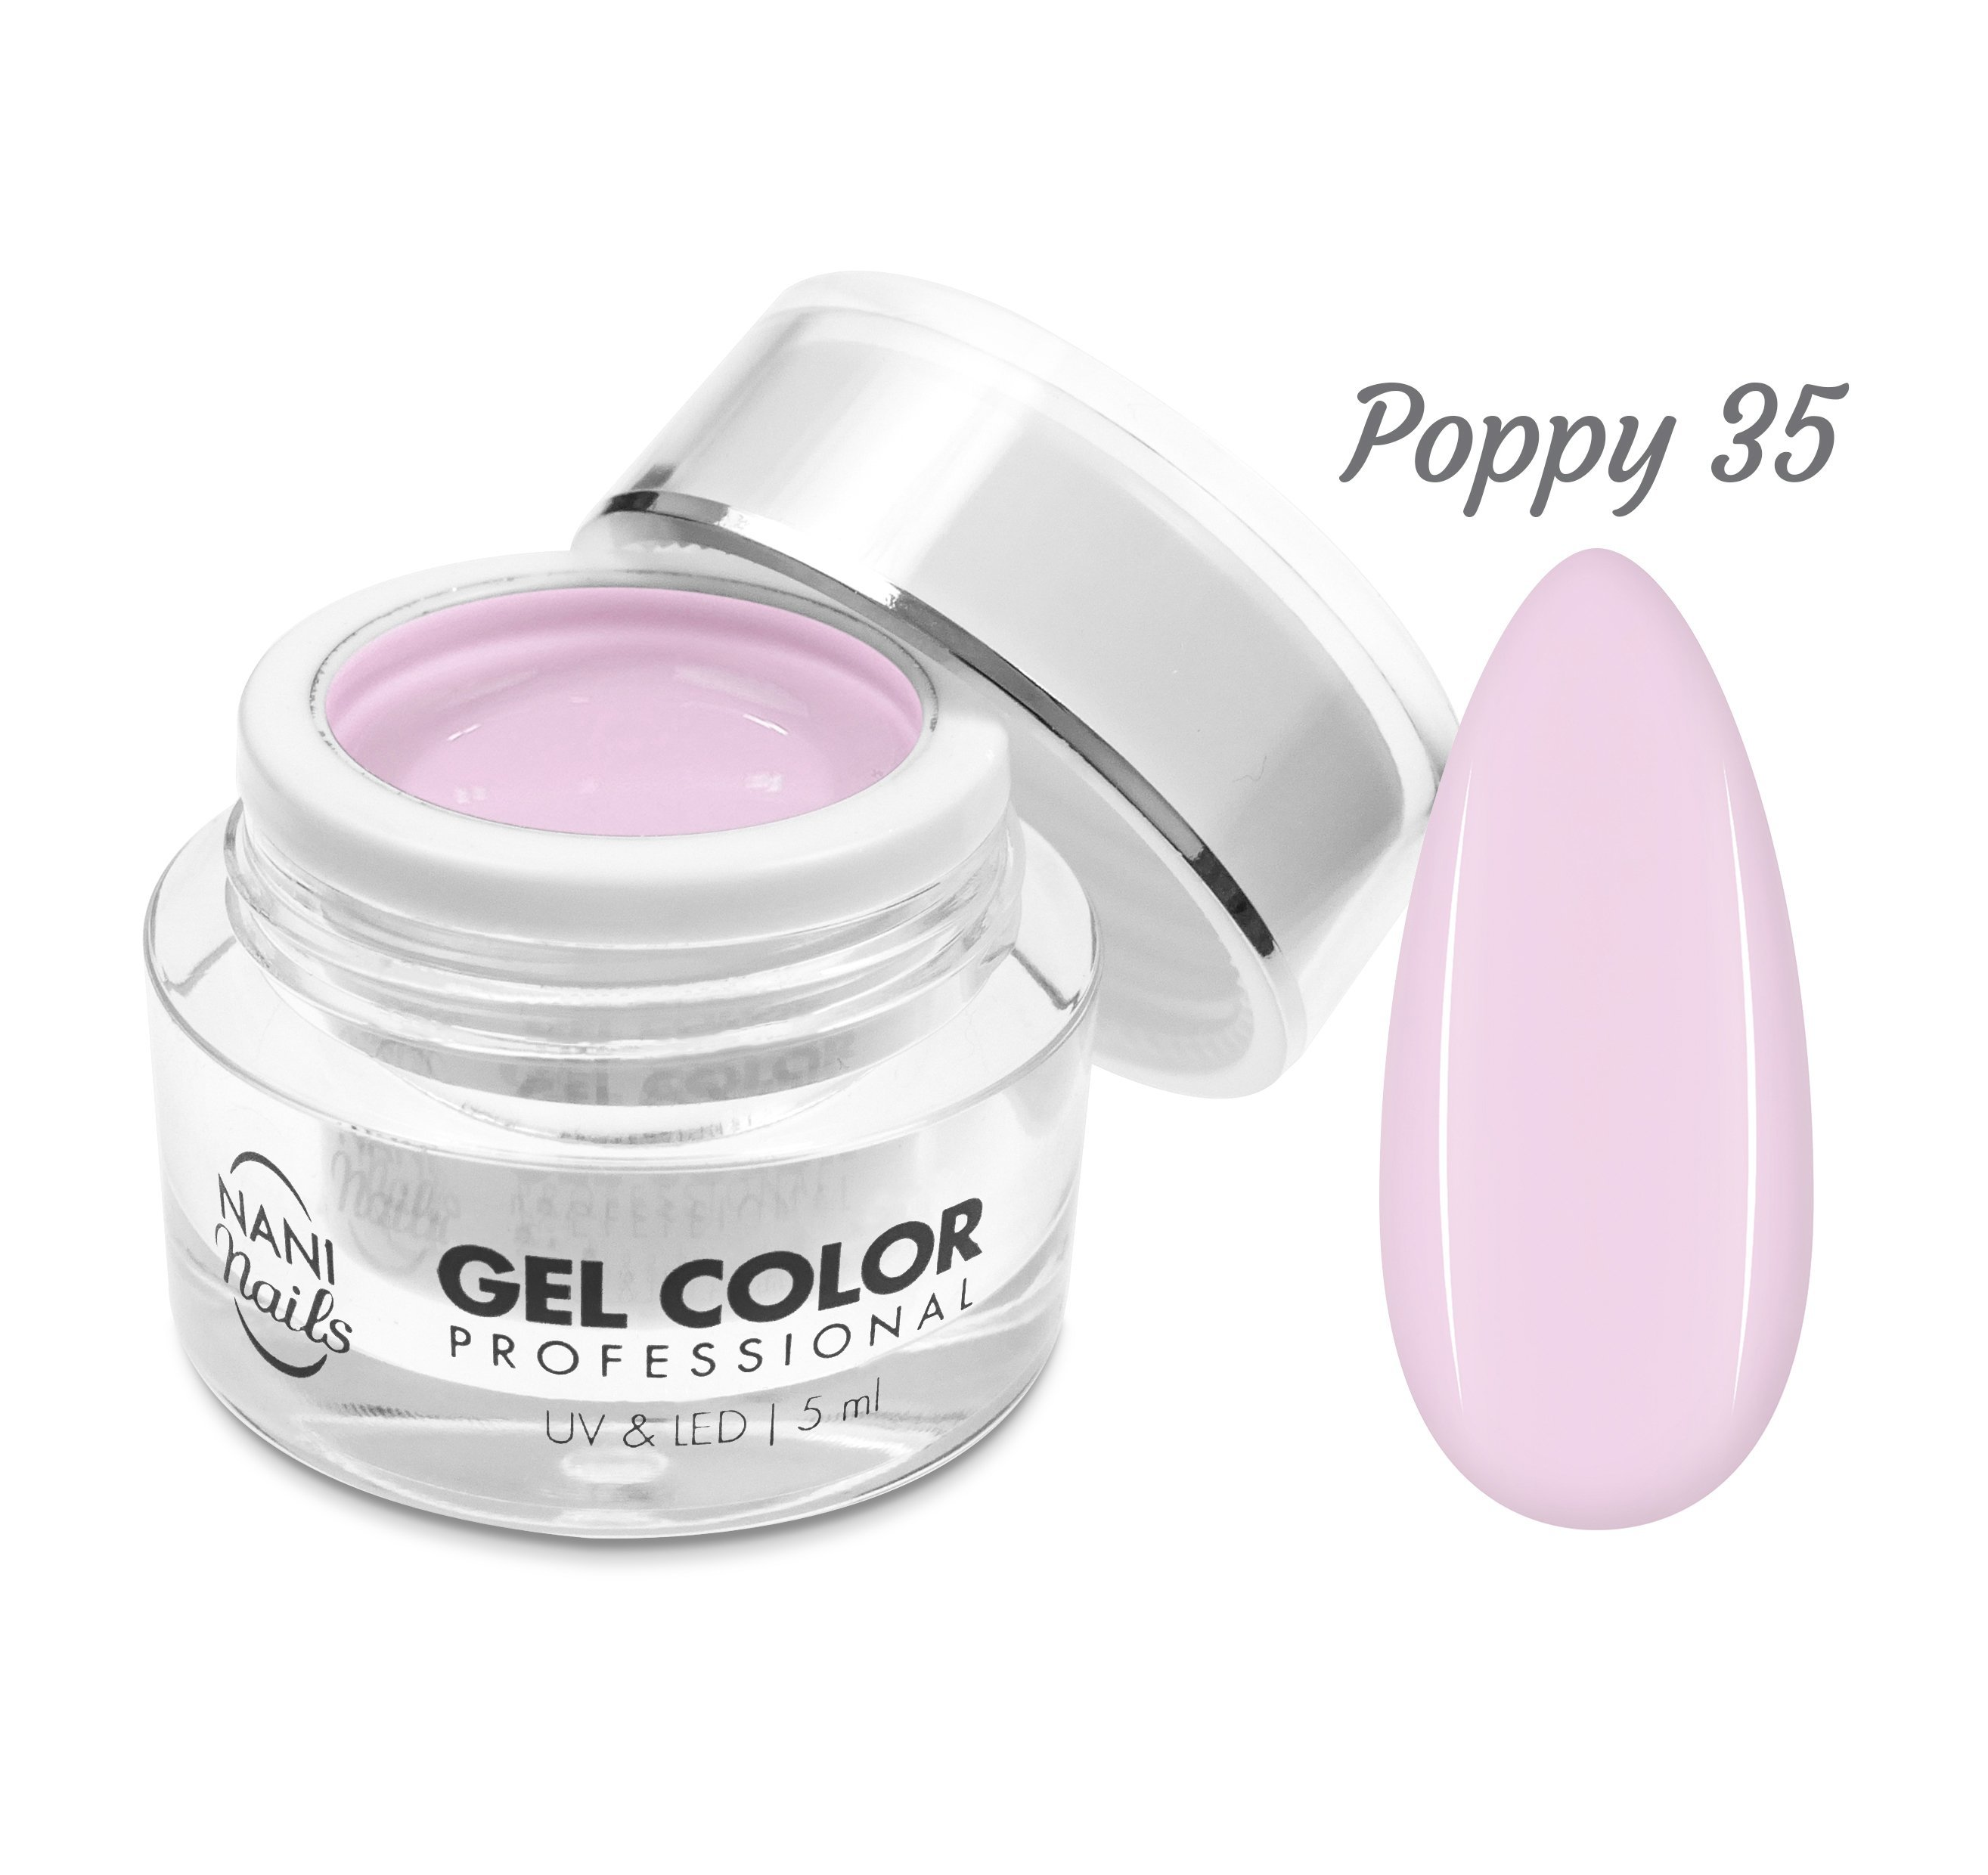 NANI UV/LED gél Professional 5 ml - Poppy